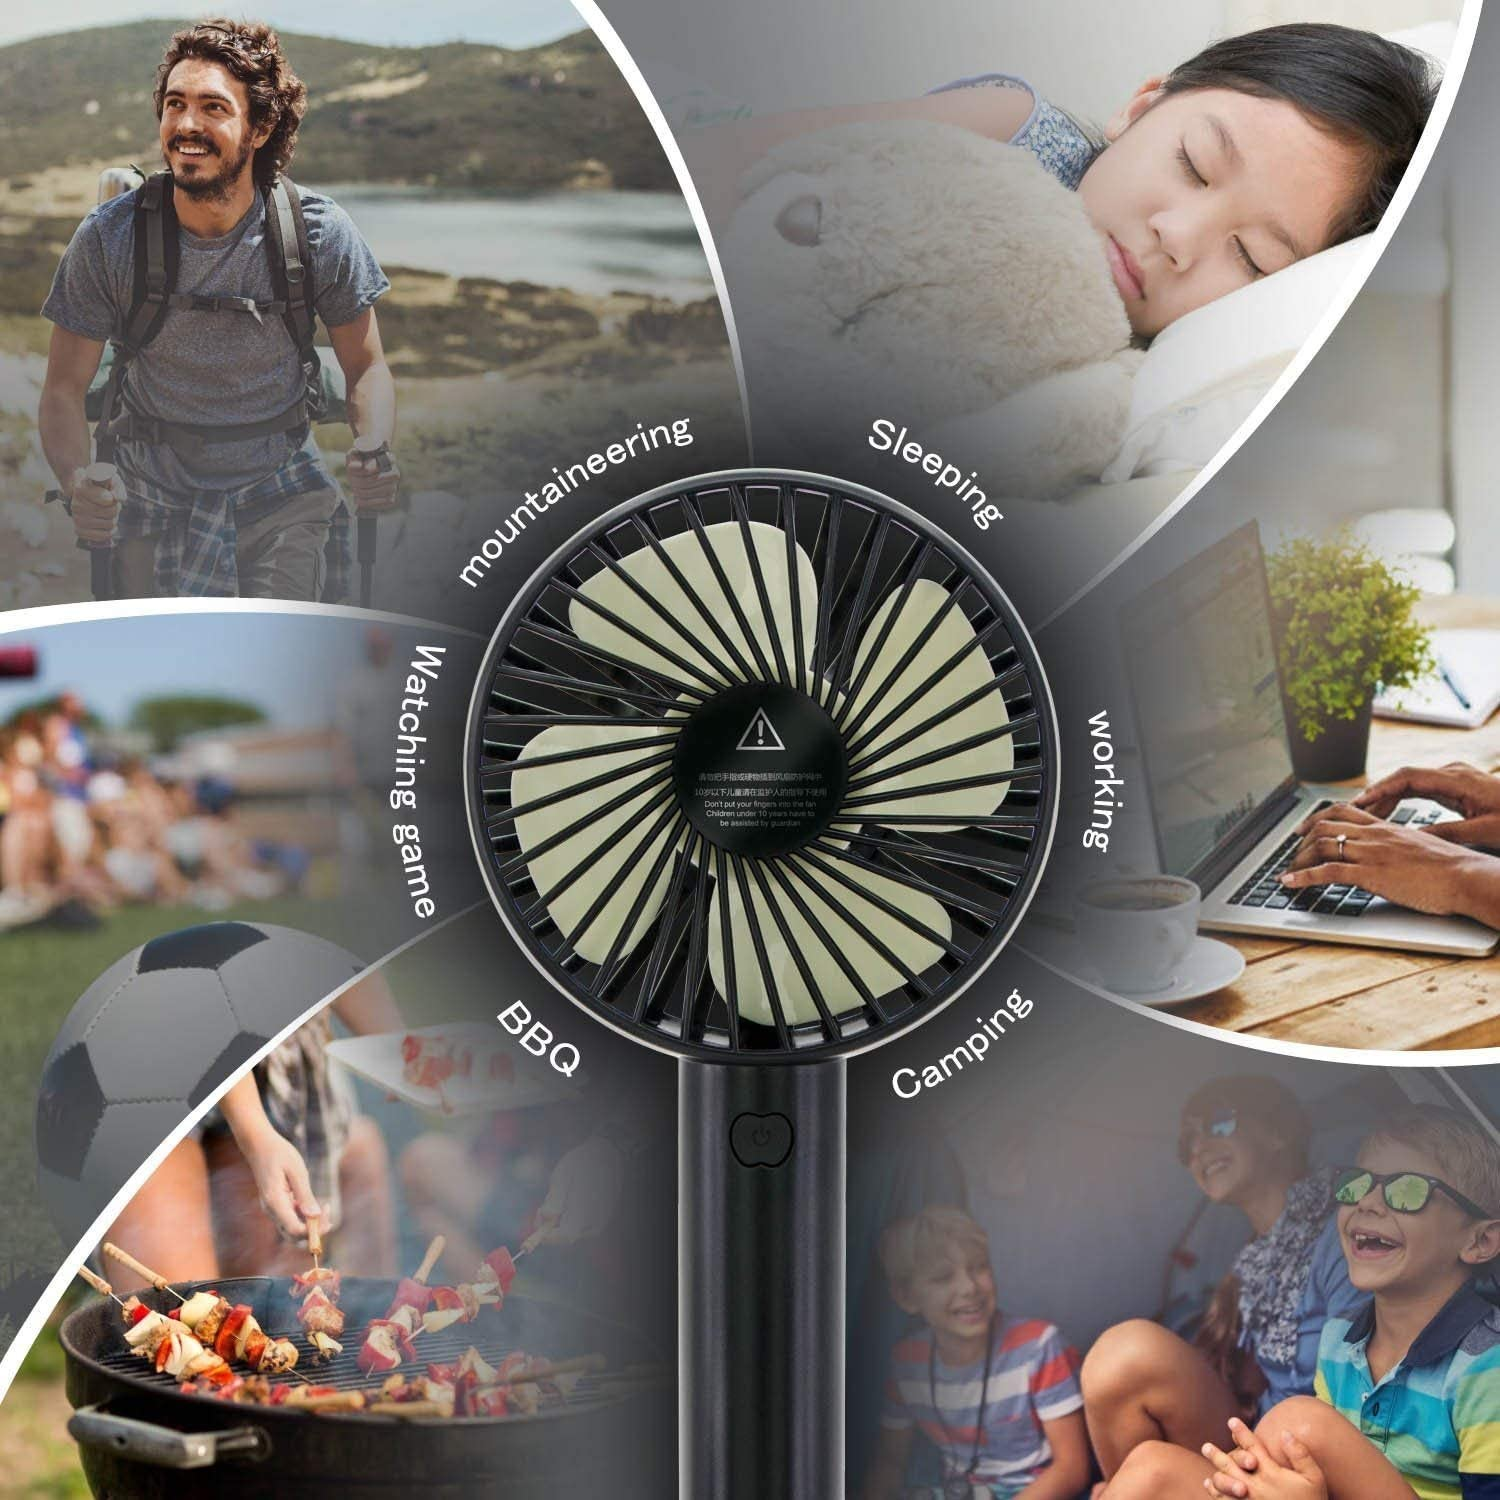 Hanging Handheld Fan USB Rechargeable Battery Operated 2018 Creative Macaron Fan for Traveling Fishing Camping Shopping Learning Working(3 Speed Black) Handheld and Desk Fan Mini Portable Fan